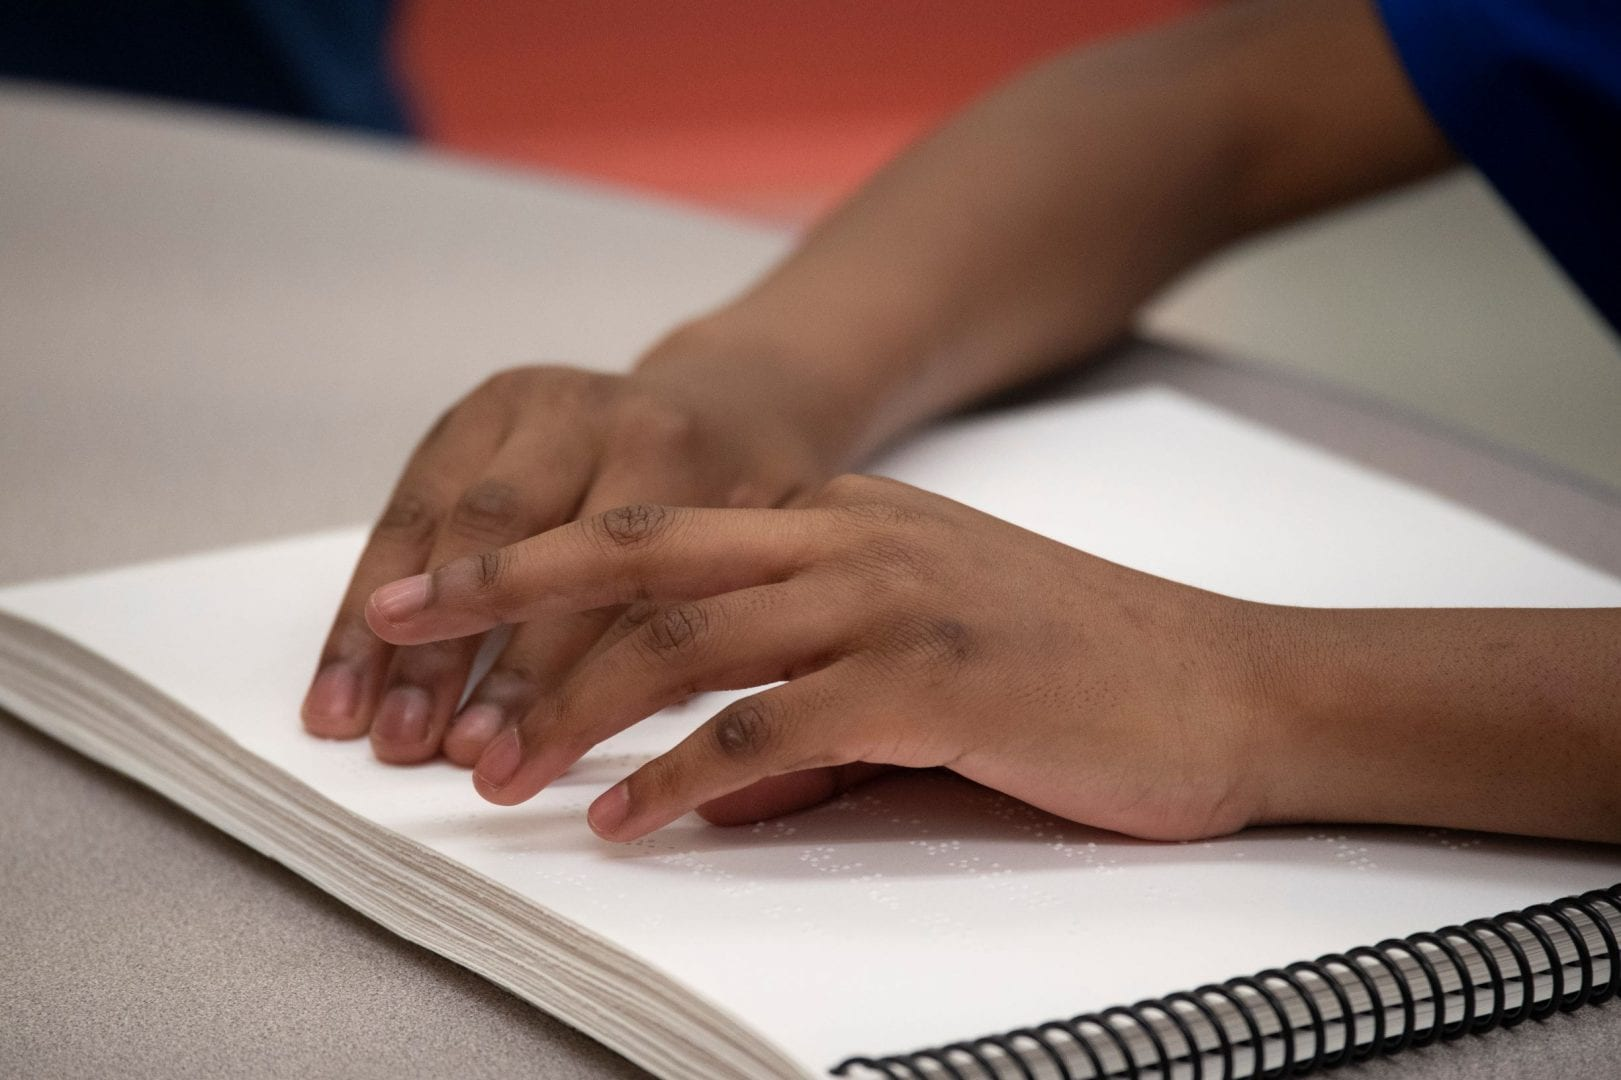 A close up of the hands of someone reading spiral bound braille